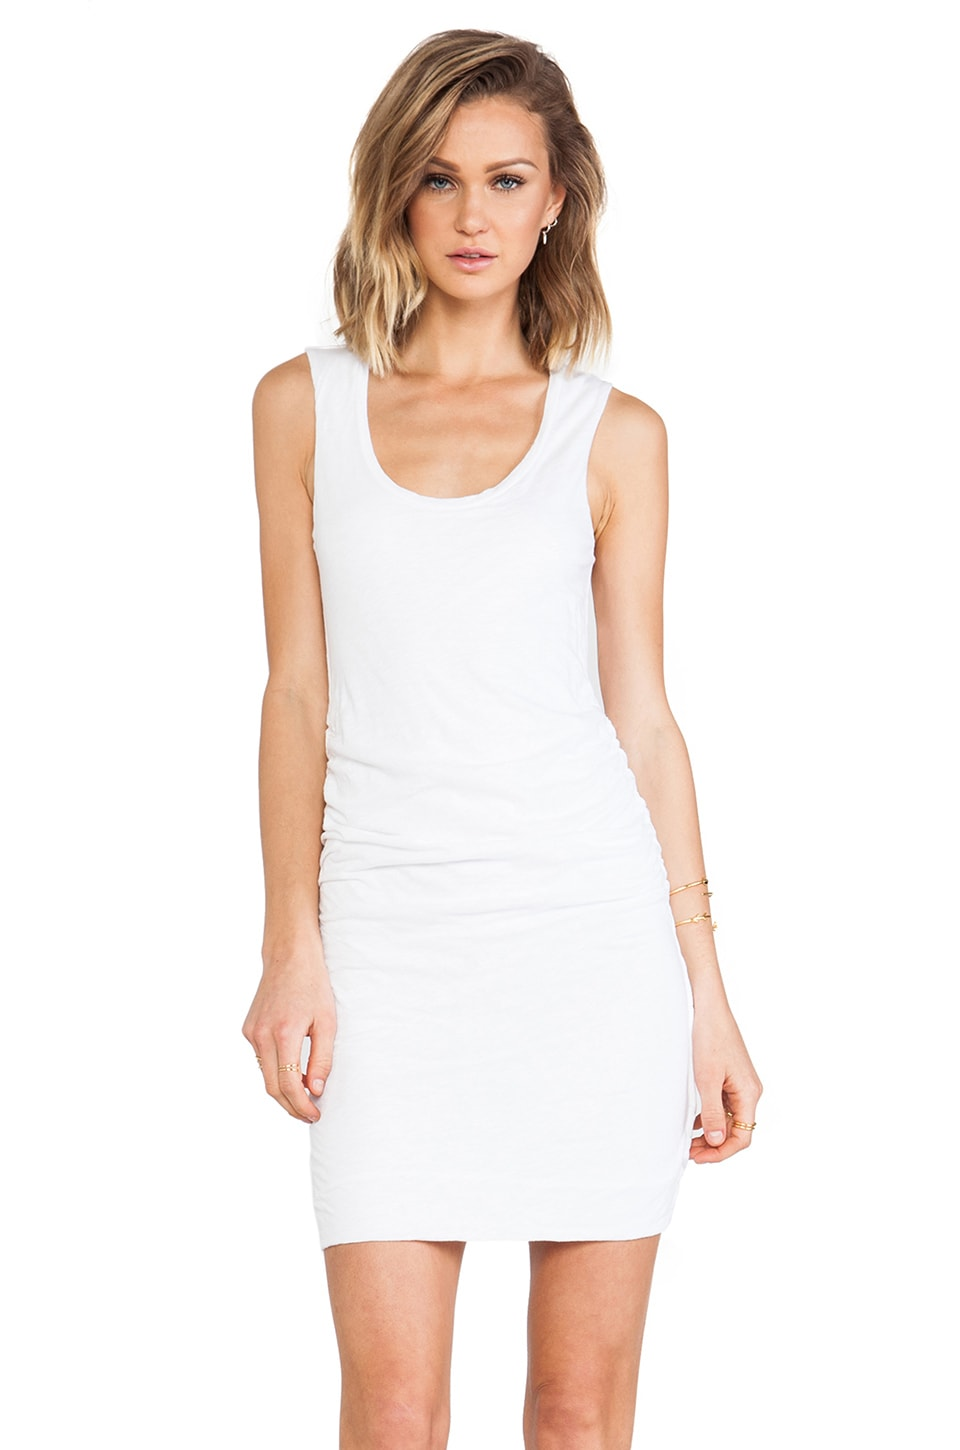 Velvet by Graham & Spencer Danette Cotton Slub Dress in White